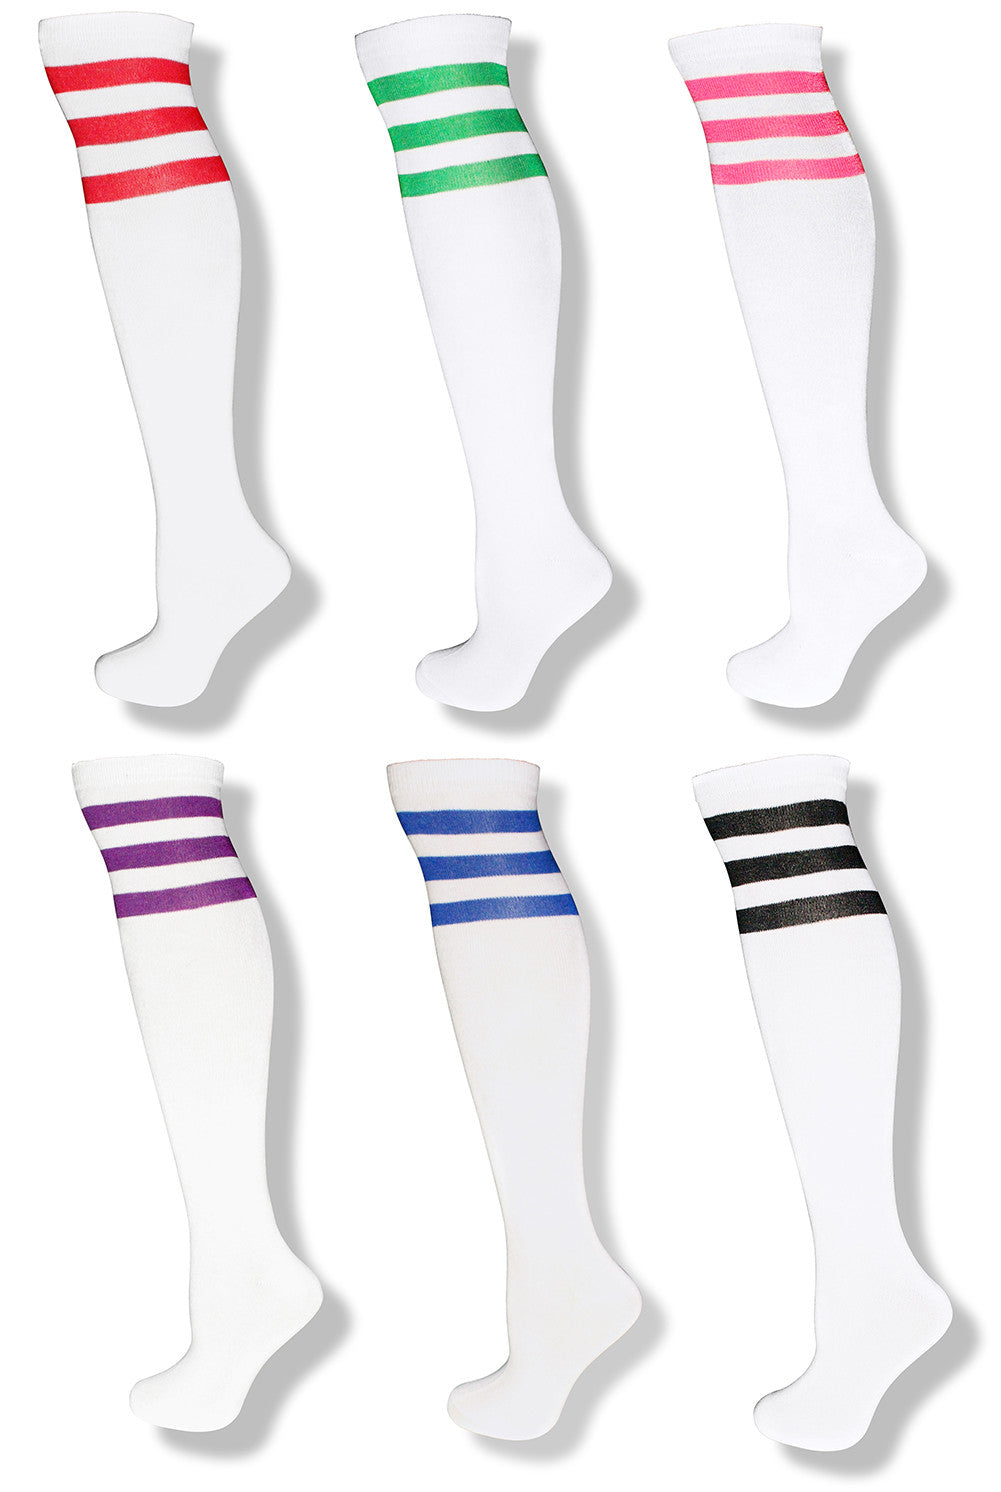 6 Pack Adult Unisex White Knee High Socks w/ Colored Stripes - Neon Nation